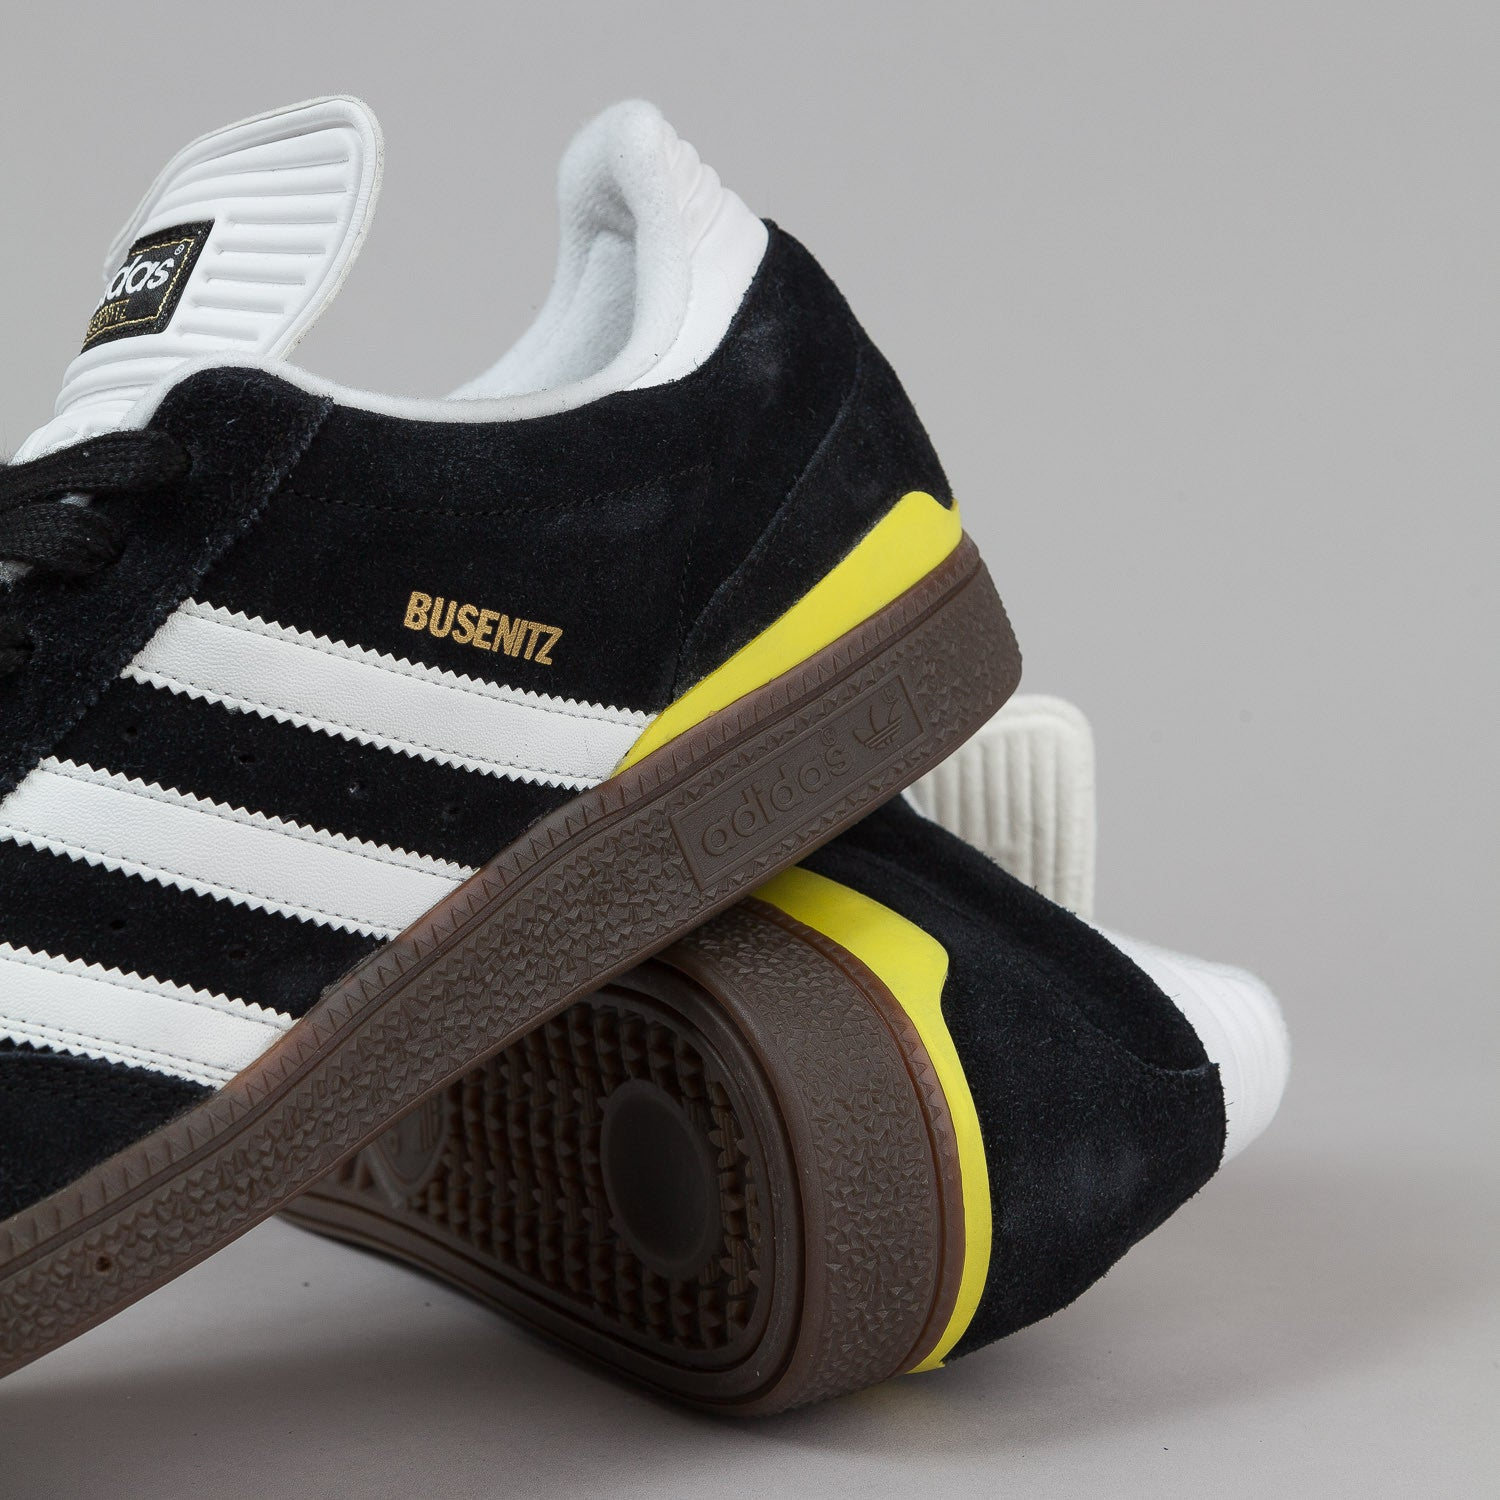 Adidas Busenitz Shoes - Black / White / Lemon Peel